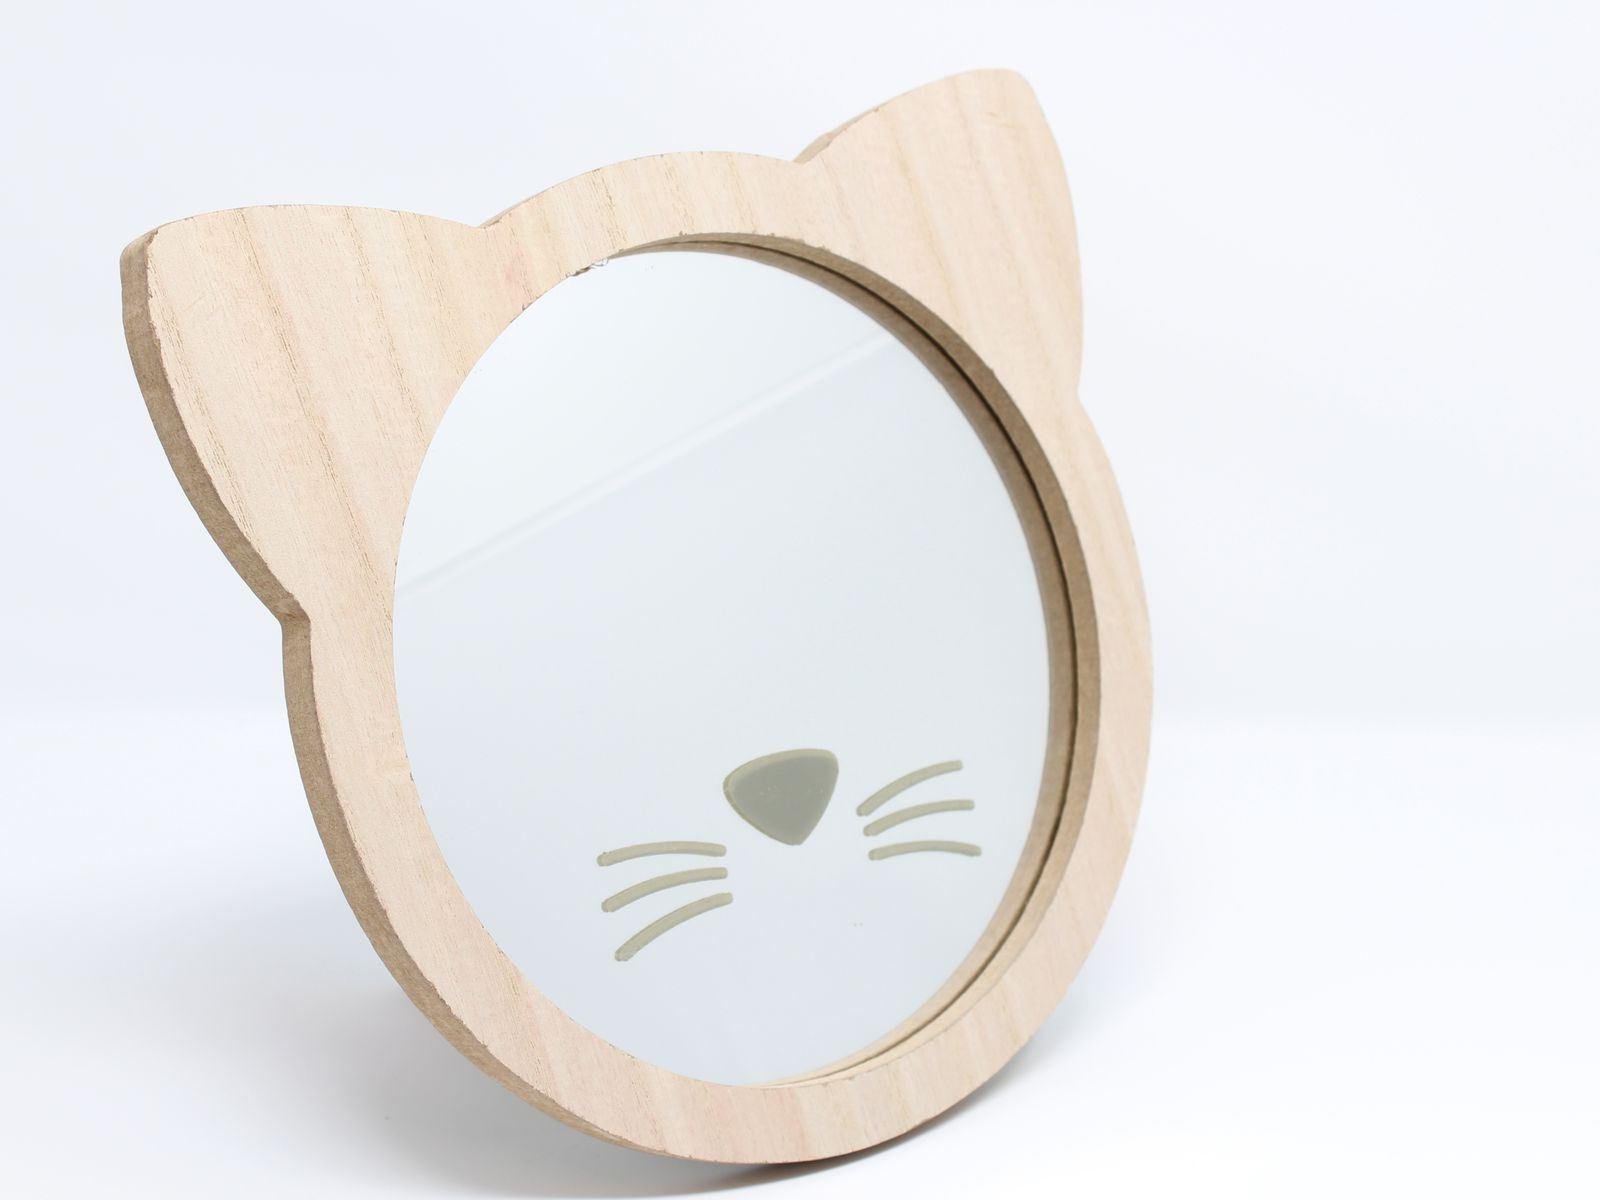 Details About Wooden Cat Face Children's Wall Mirror Nursery 23cm Inside Most Popular Childrens Wall Mirrors (View 10 of 20)